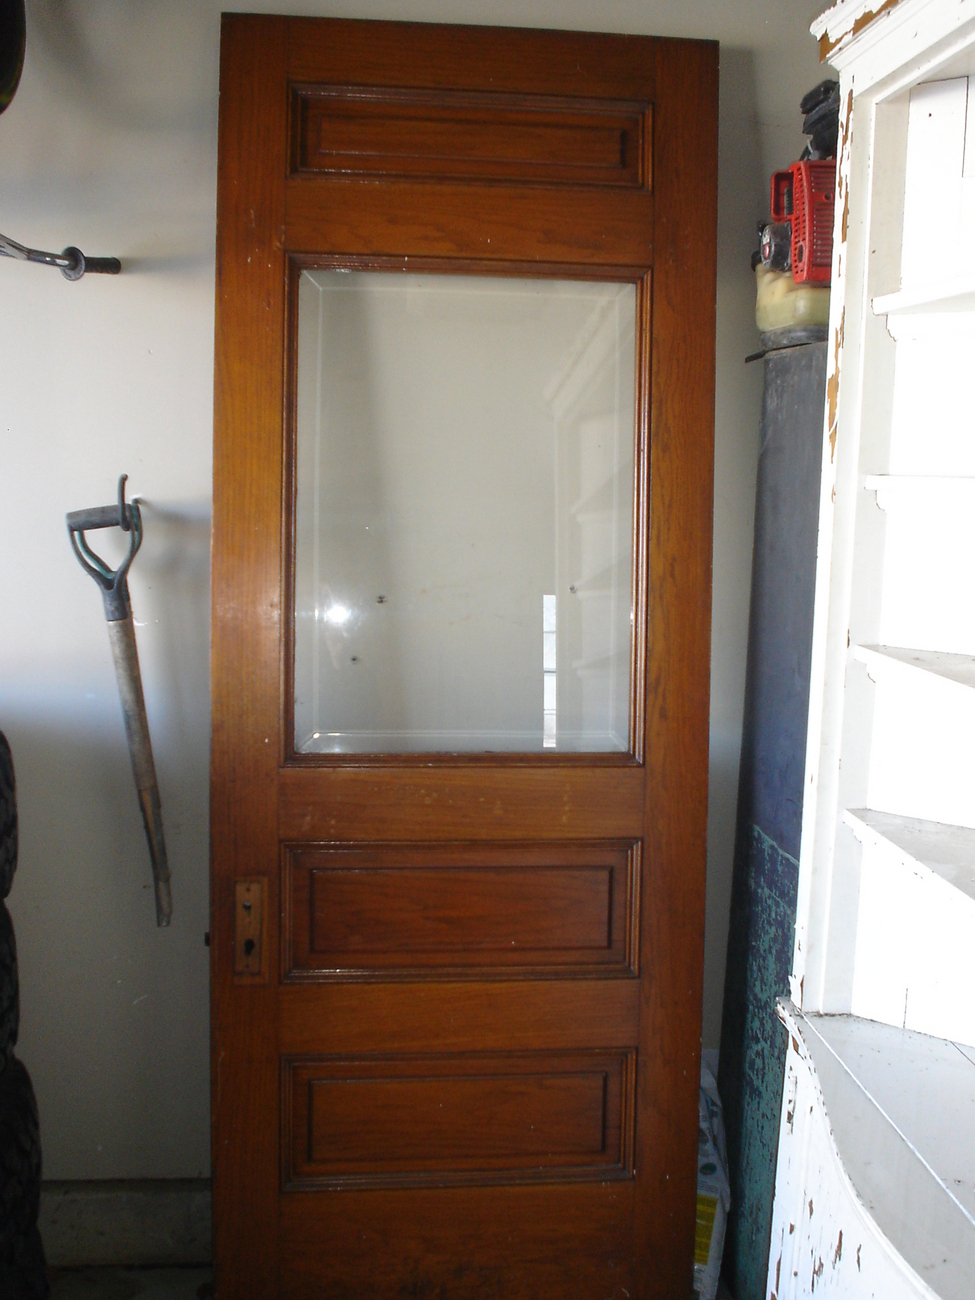 1880's Beveled Glass Oak Interior/Exterior Door